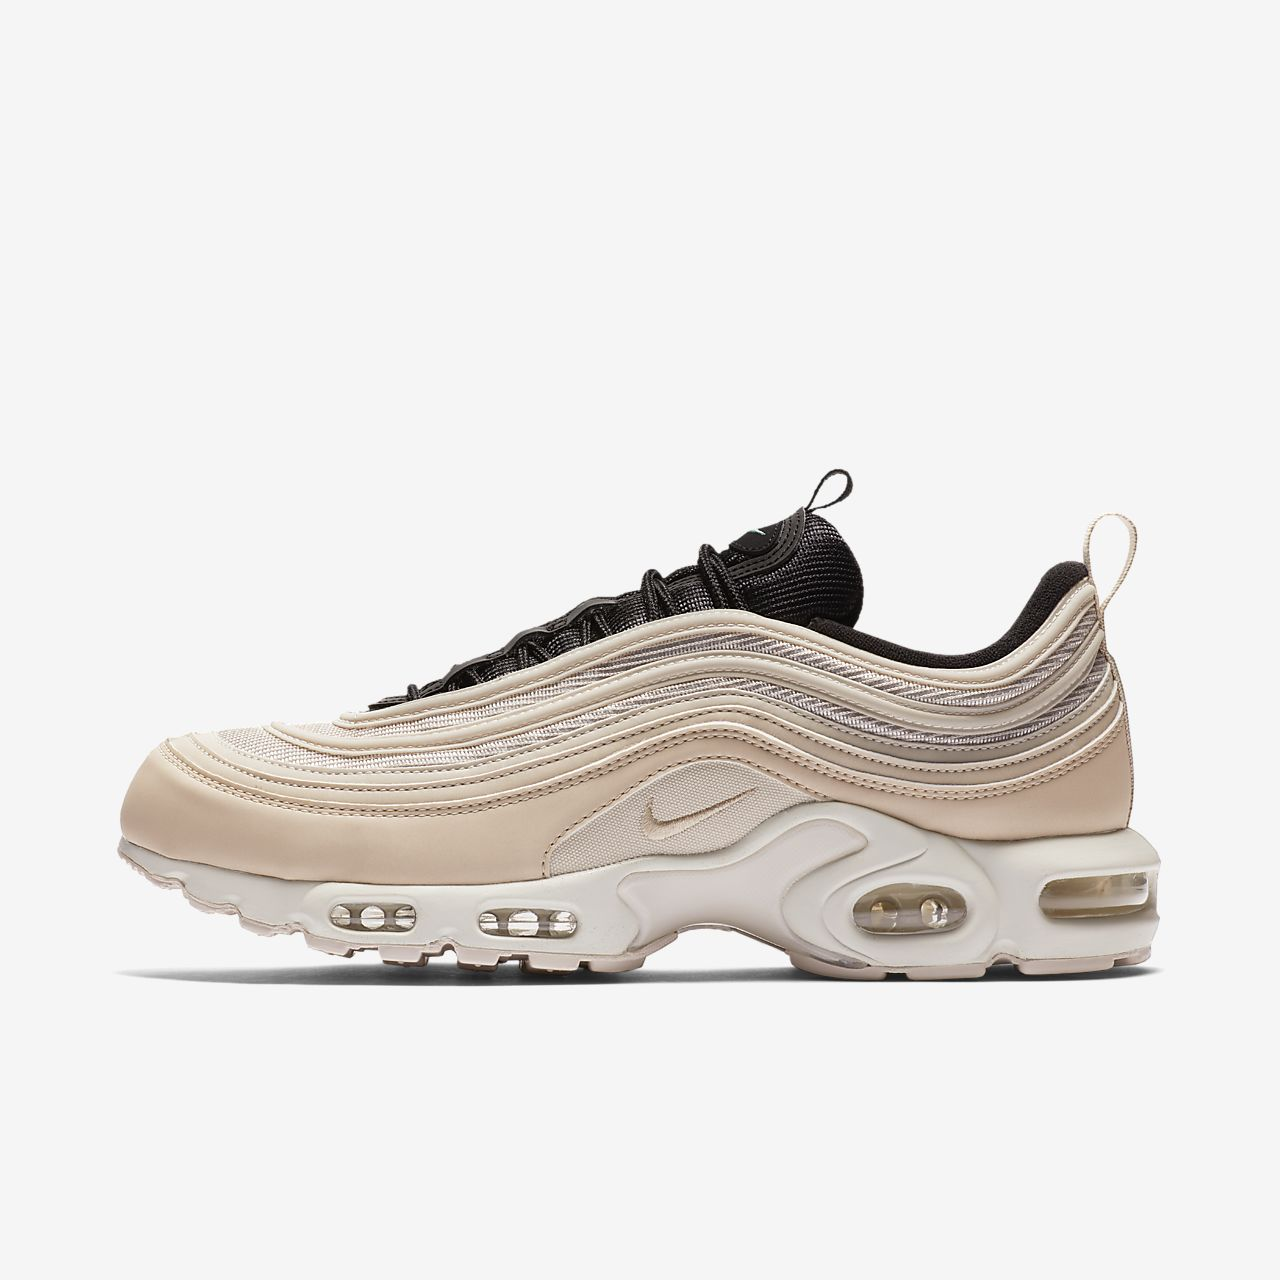 hot sale online 844d0 19e50 ... Nike Air Max Plus 97 Herenschoen